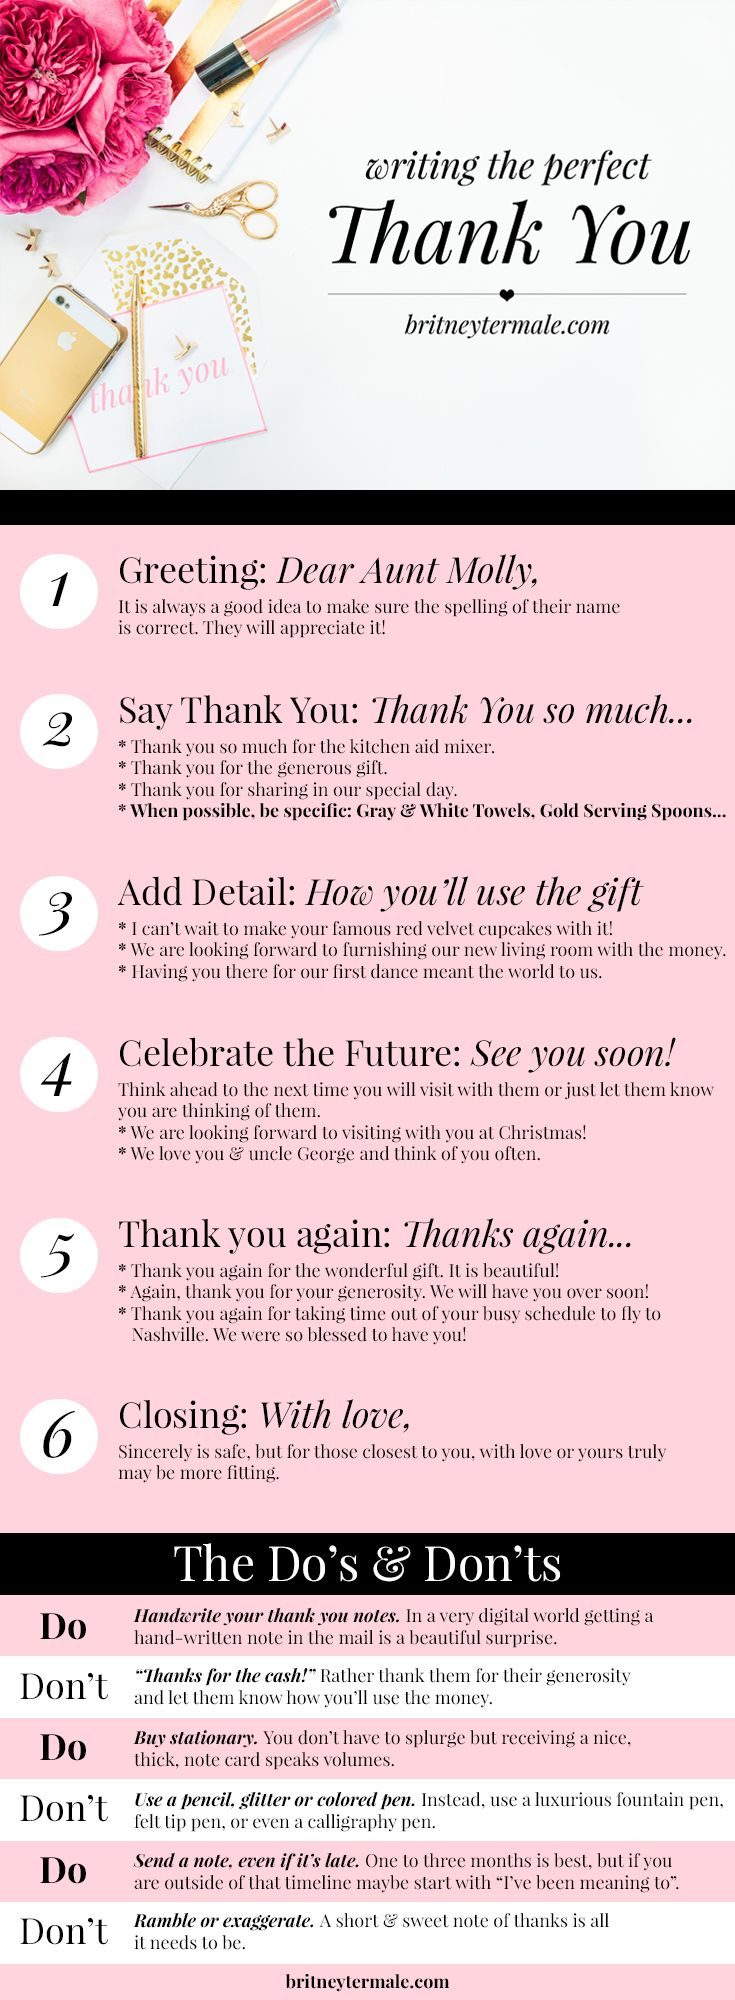 25 unique thank you letter ideas on pinterest thank you note how to write the perfect thank you note l britney termale madrichimfo Gallery